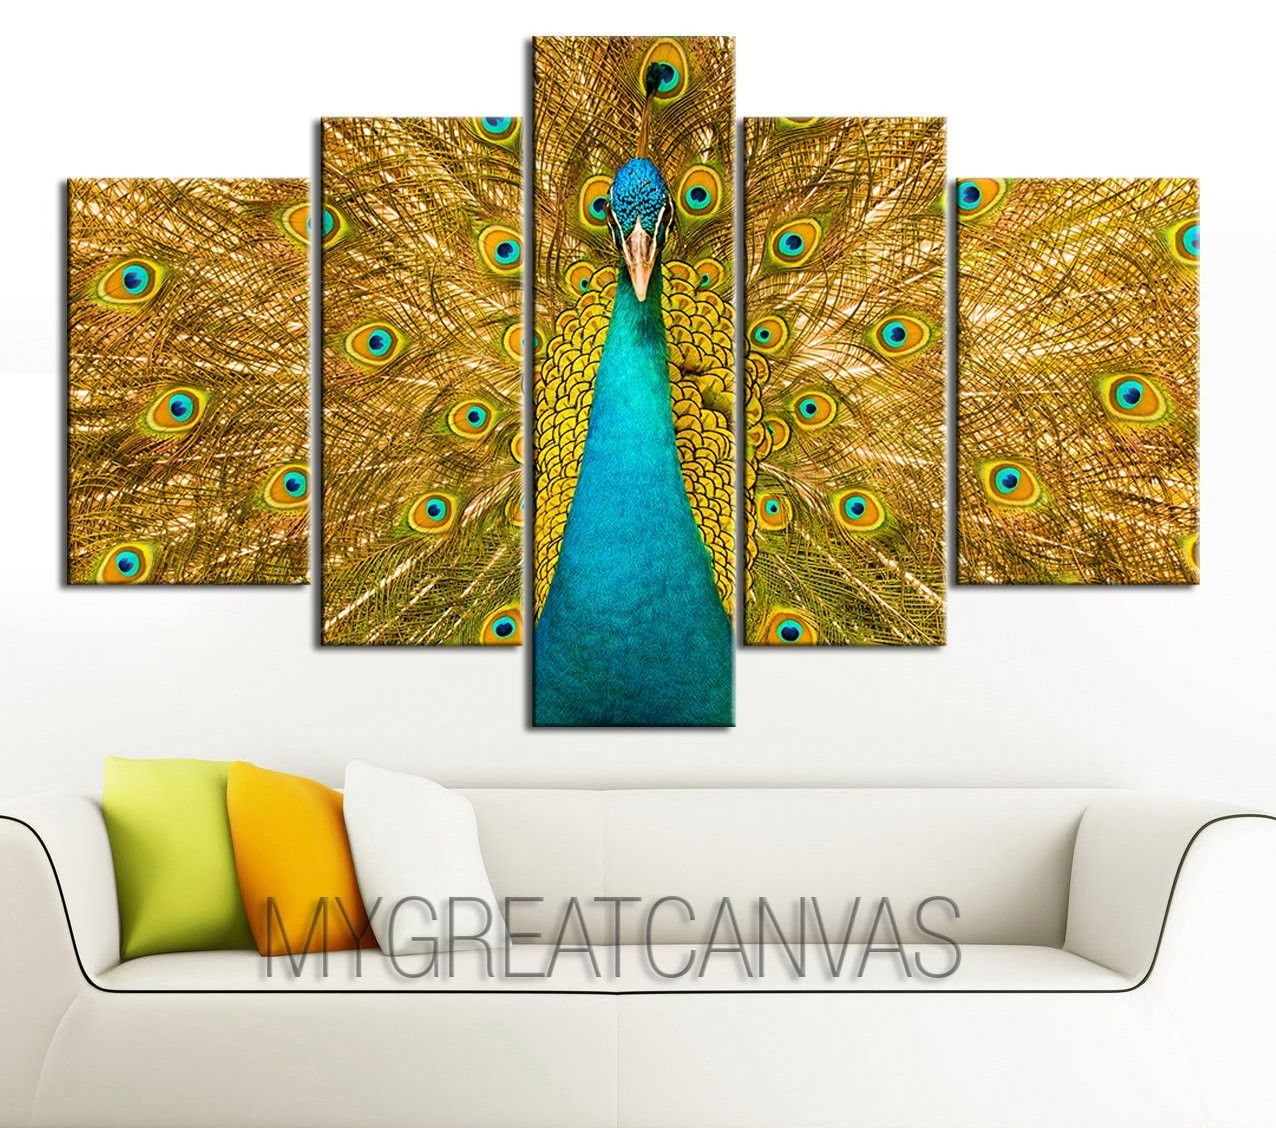 Extra Large Wall Art CANVAS - Colorful Peacock Print on Canvas + ...